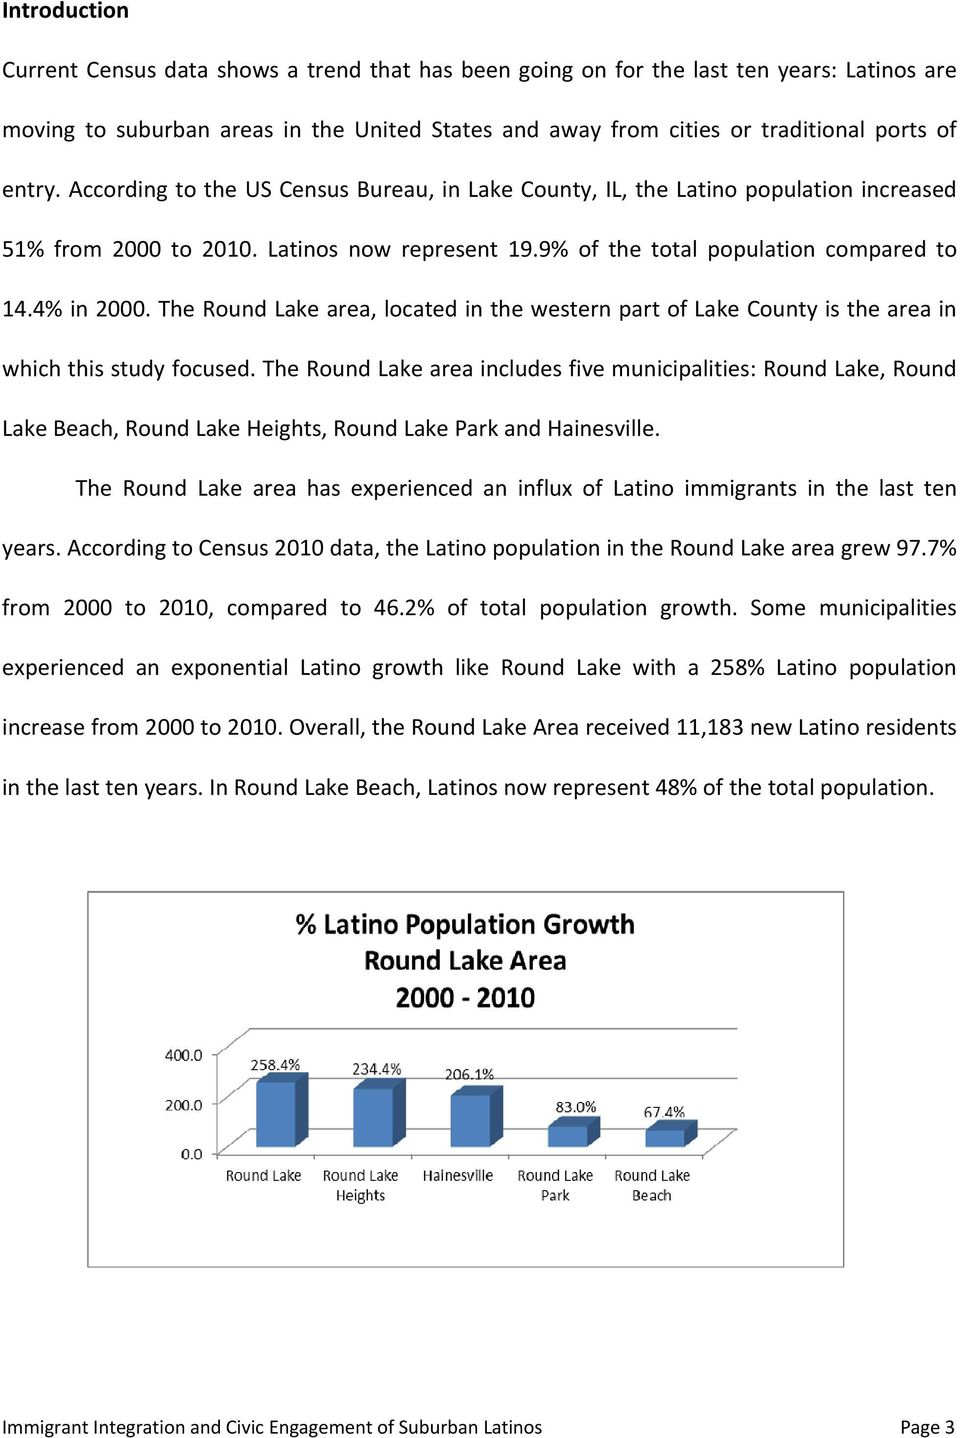 The Round Lake area, located in the western part of Lake County is the area in which this study focused.